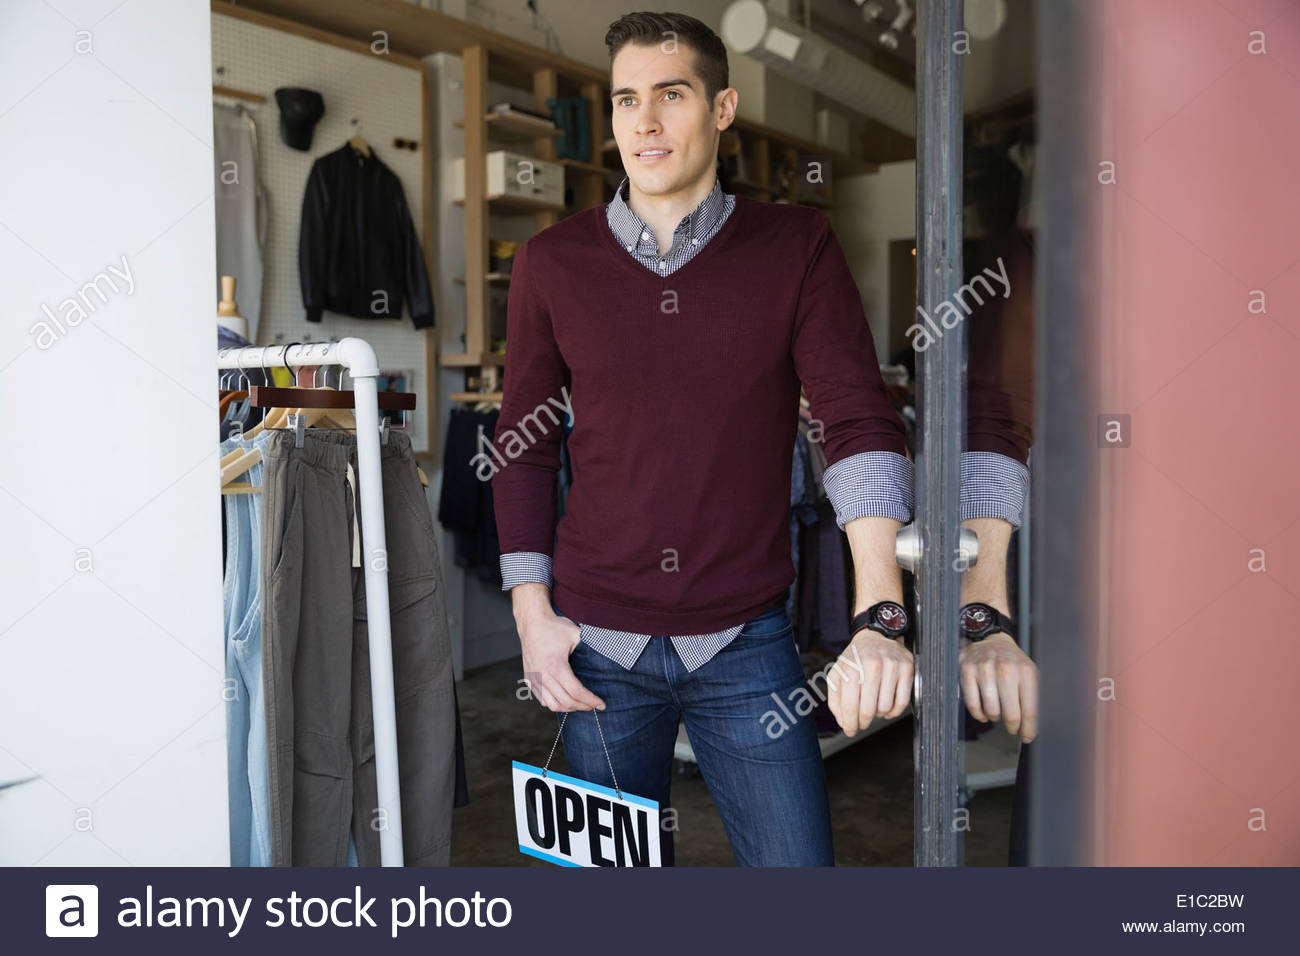 Business owner with Open sign in shop doorway Stock Photo